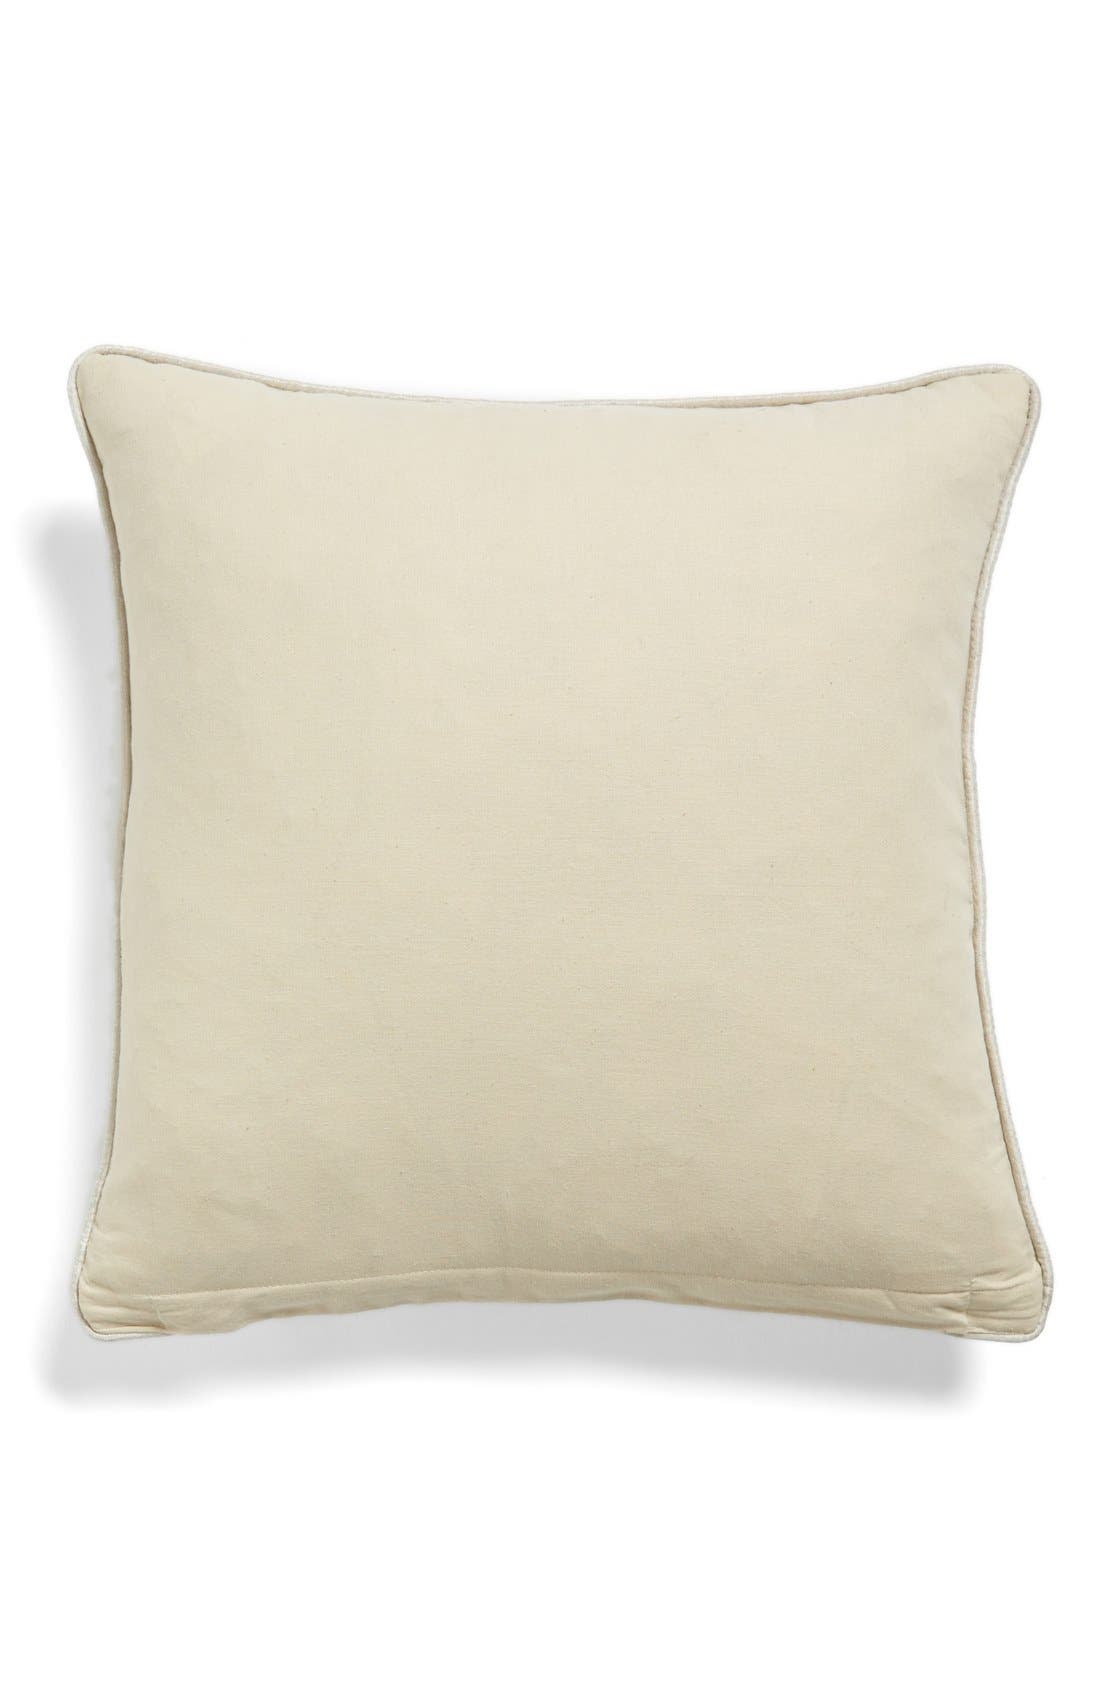 Alternate Image 2  - Levtex Floral Stitch Accent Pillow